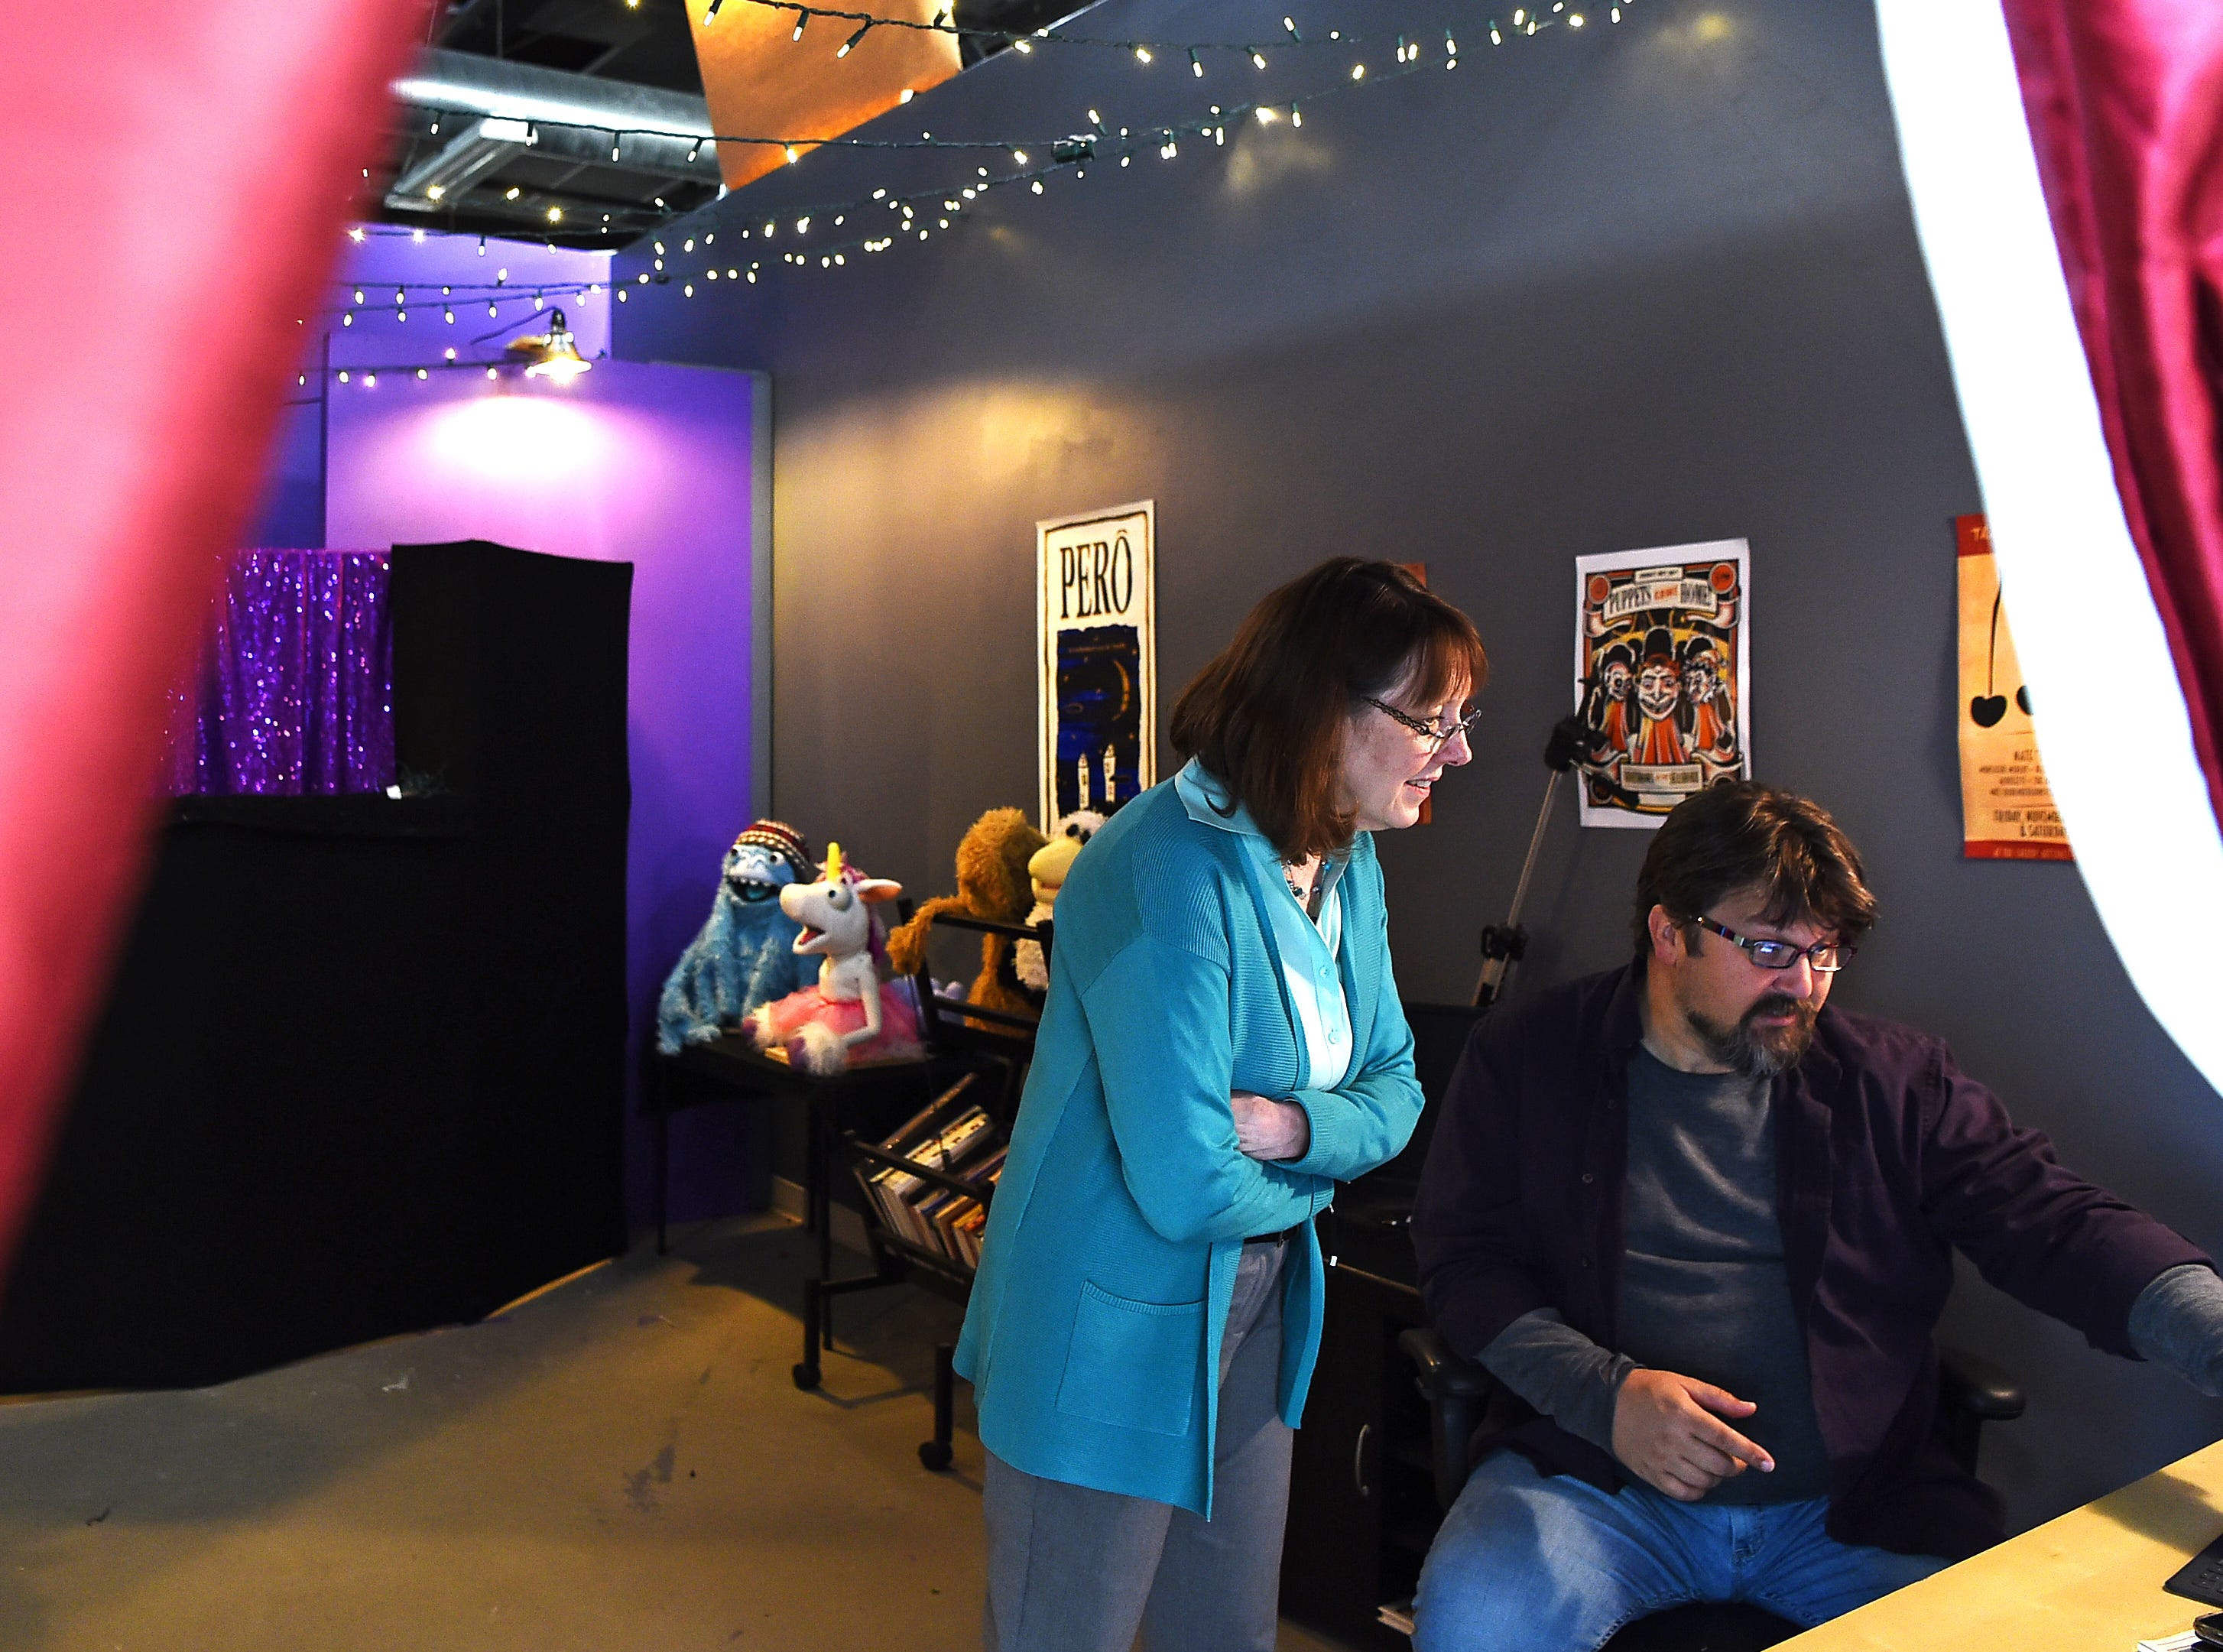 South Hill Business Complex manager Linda Luciano visits Scott Hitz in his Artist Alley studio PuttHitz. Hitz, a puppeteer, rents studio space in the former Danby Road industrial space that has been transformed into artist studios.